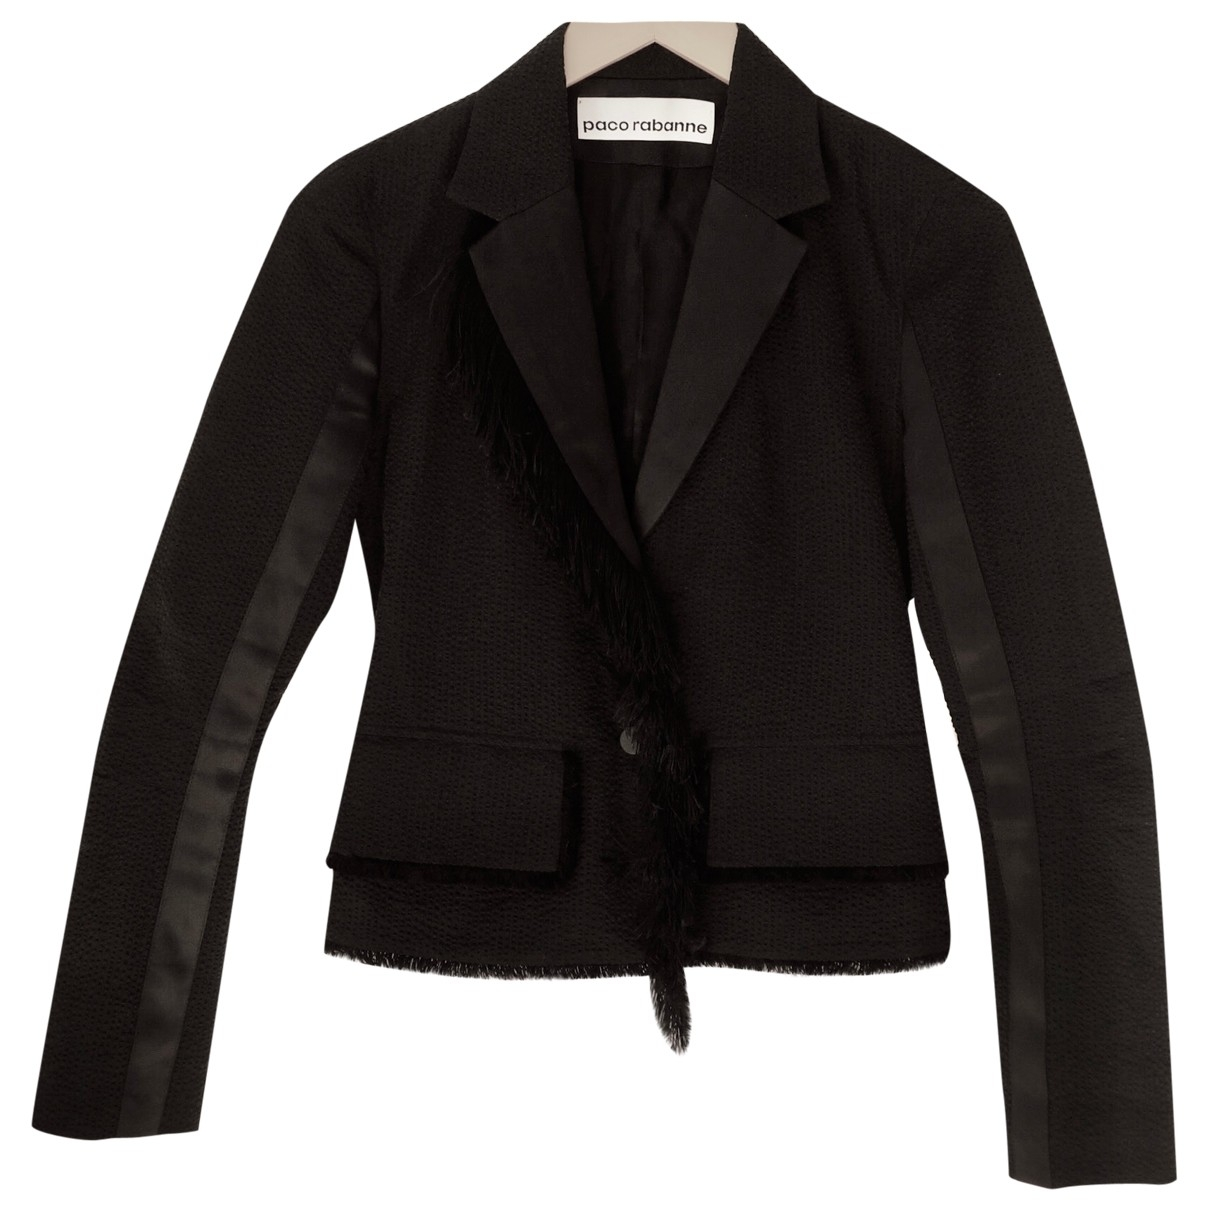 Paco Rabanne \N Black Cotton jacket for Women 36 FR